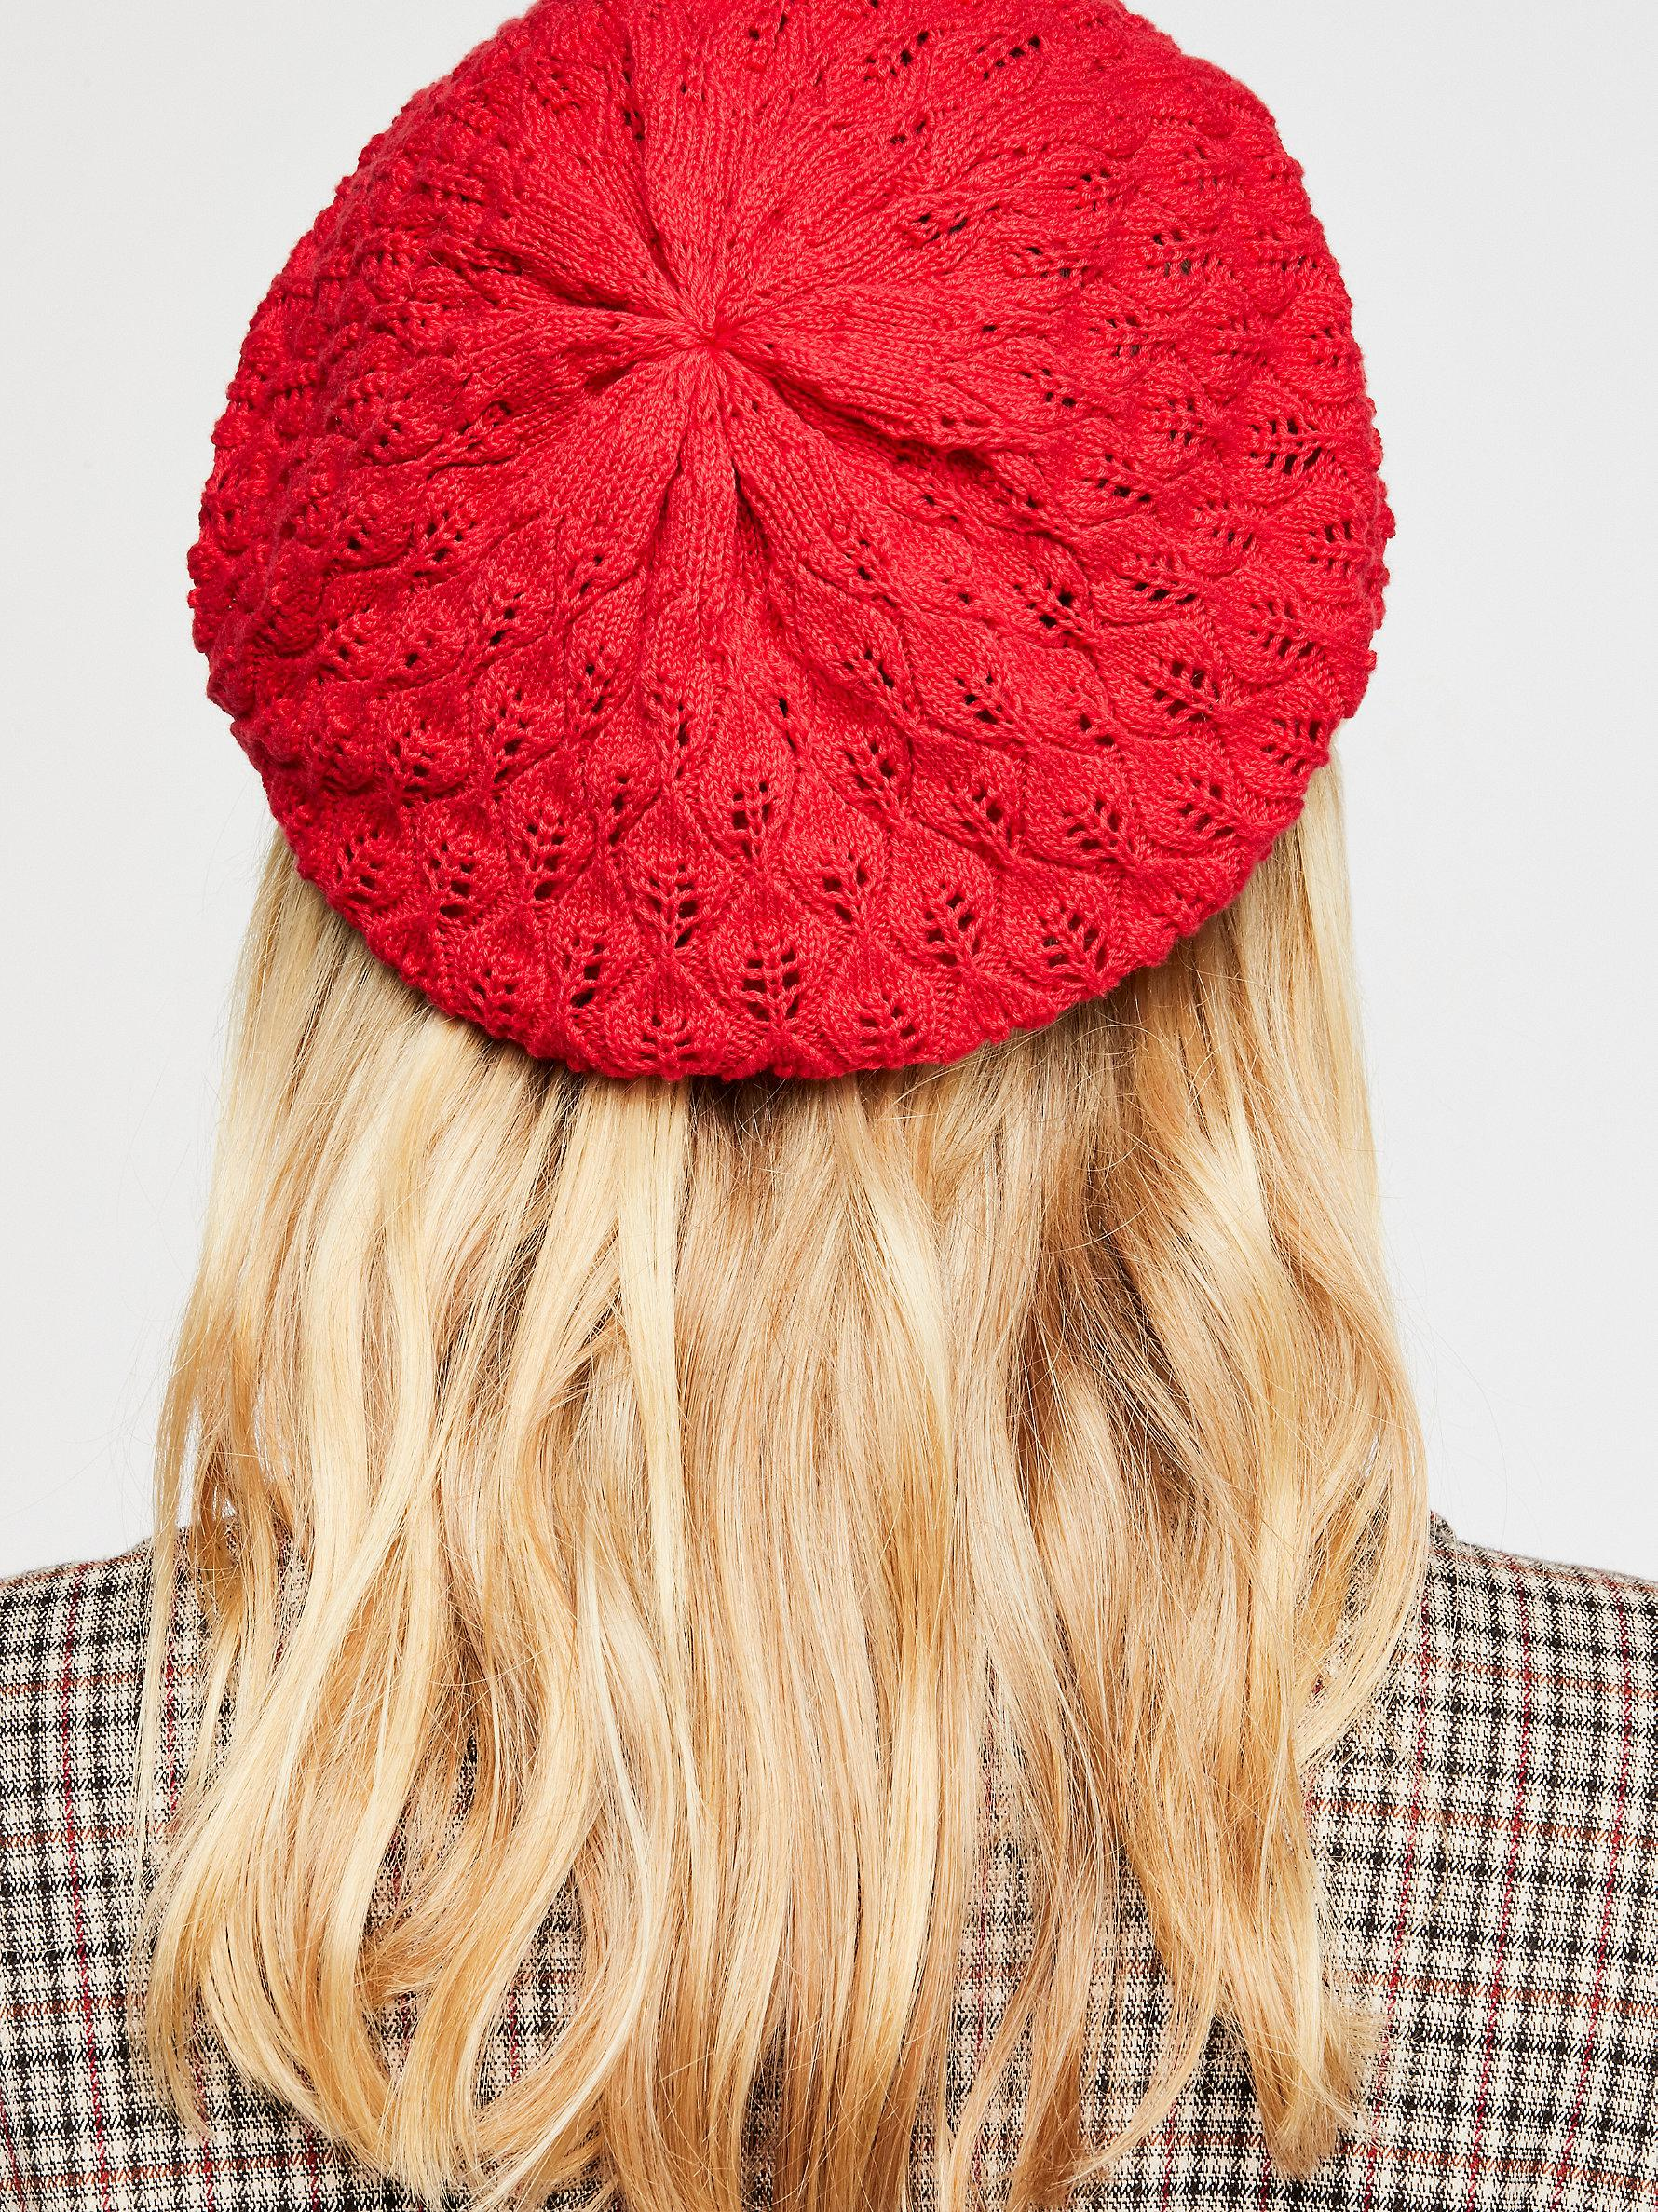 Free People Amelia Crochet Knit Beret in Red - Lyst be515001c5e